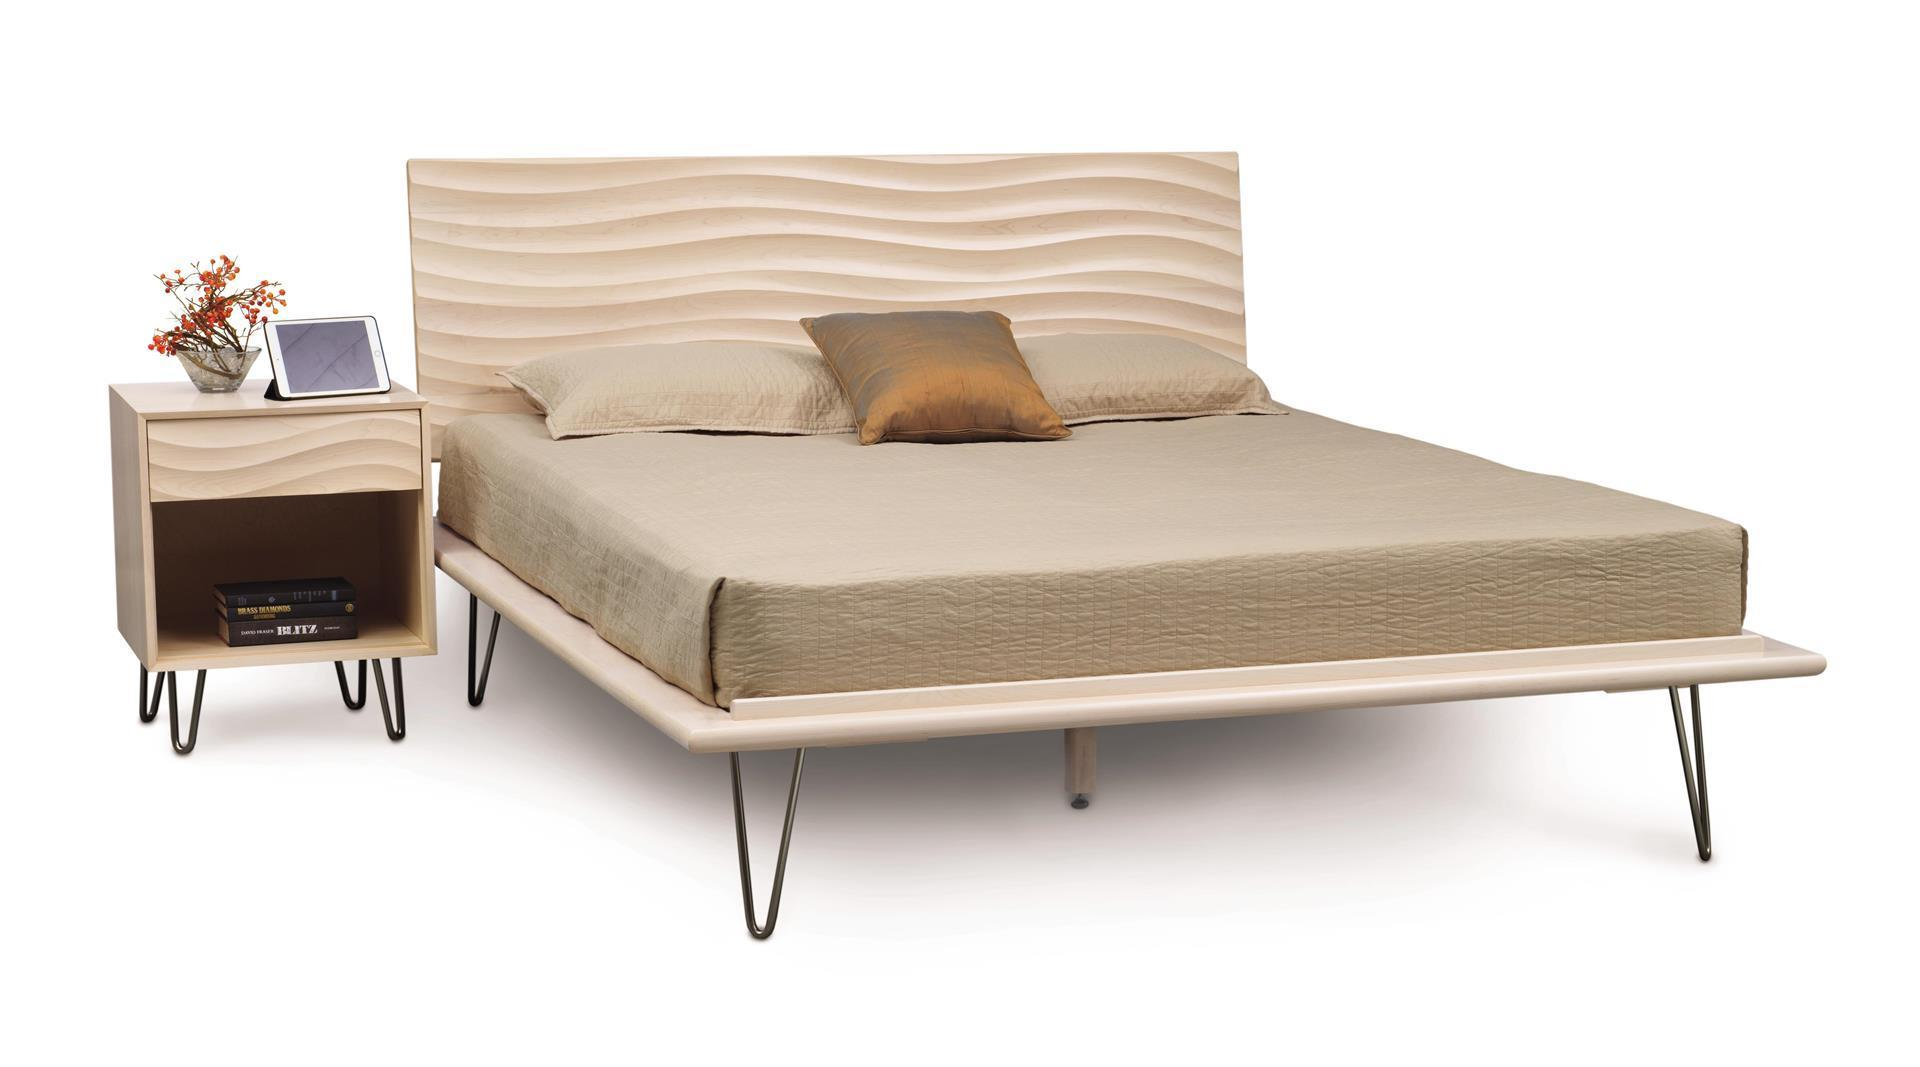 Copeland Wave Bed from Eco Friendly Digs